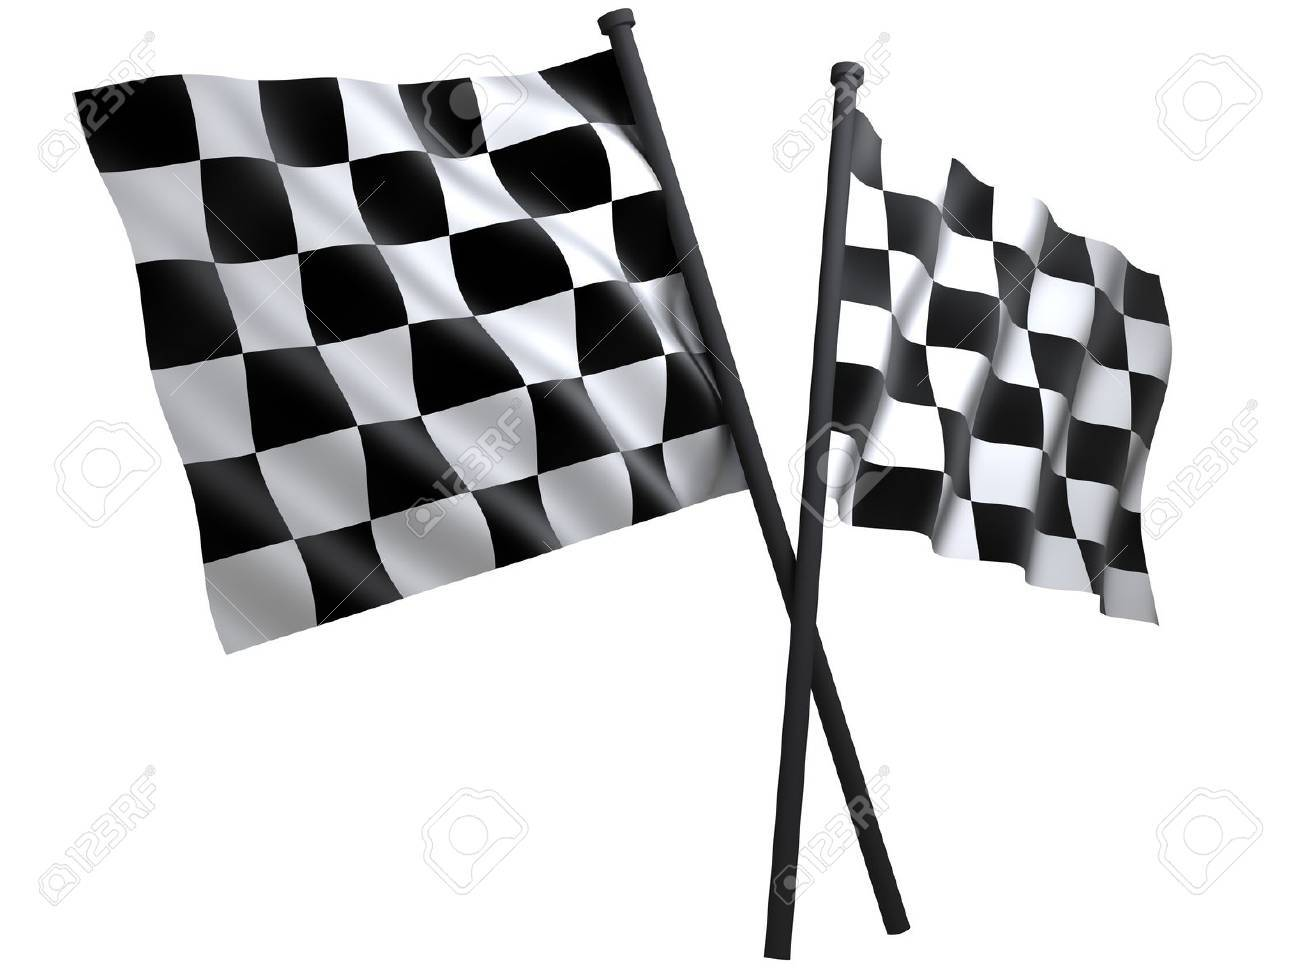 flag of start or finesha, done in 3d Stock Photo - 7800317